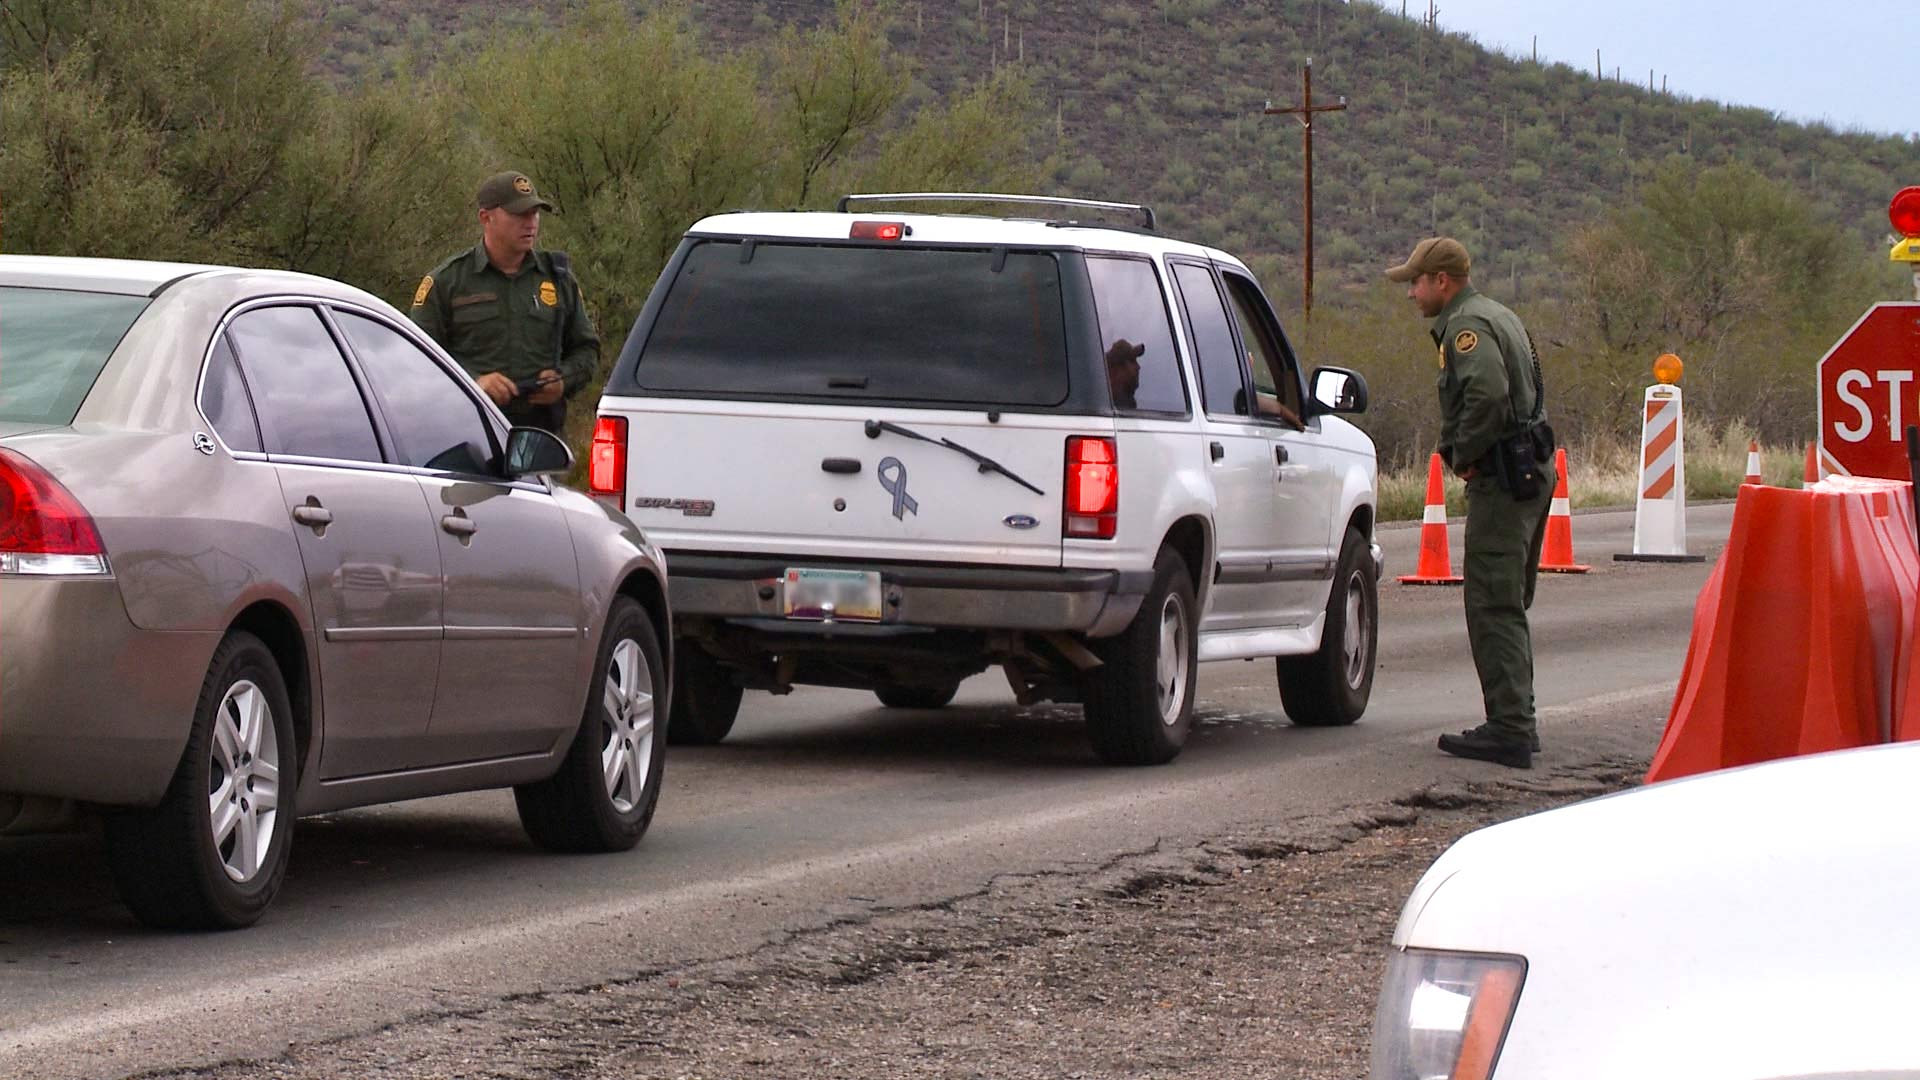 A Border Patrol checkpoint in Southern Arizona.